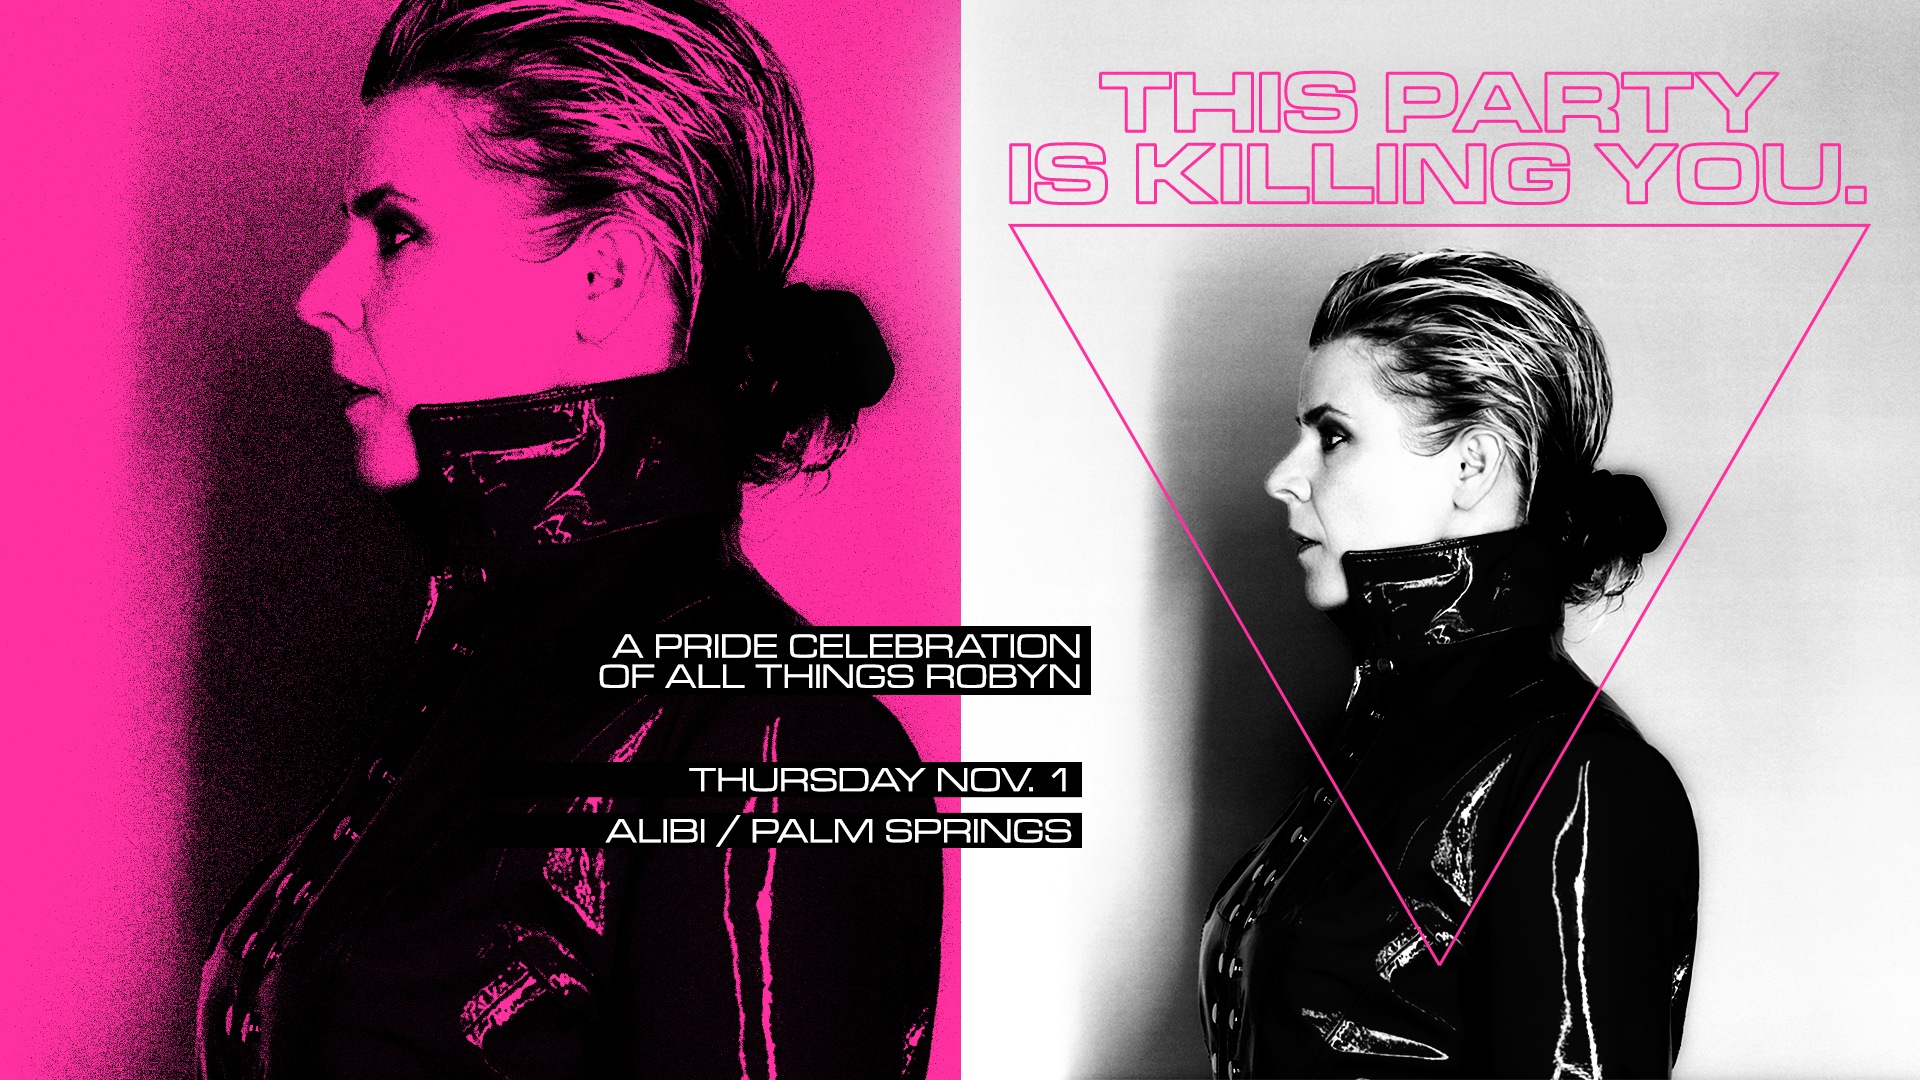 This Party Is Killing You: A Pride Celebration of Robyn in Palm Springs